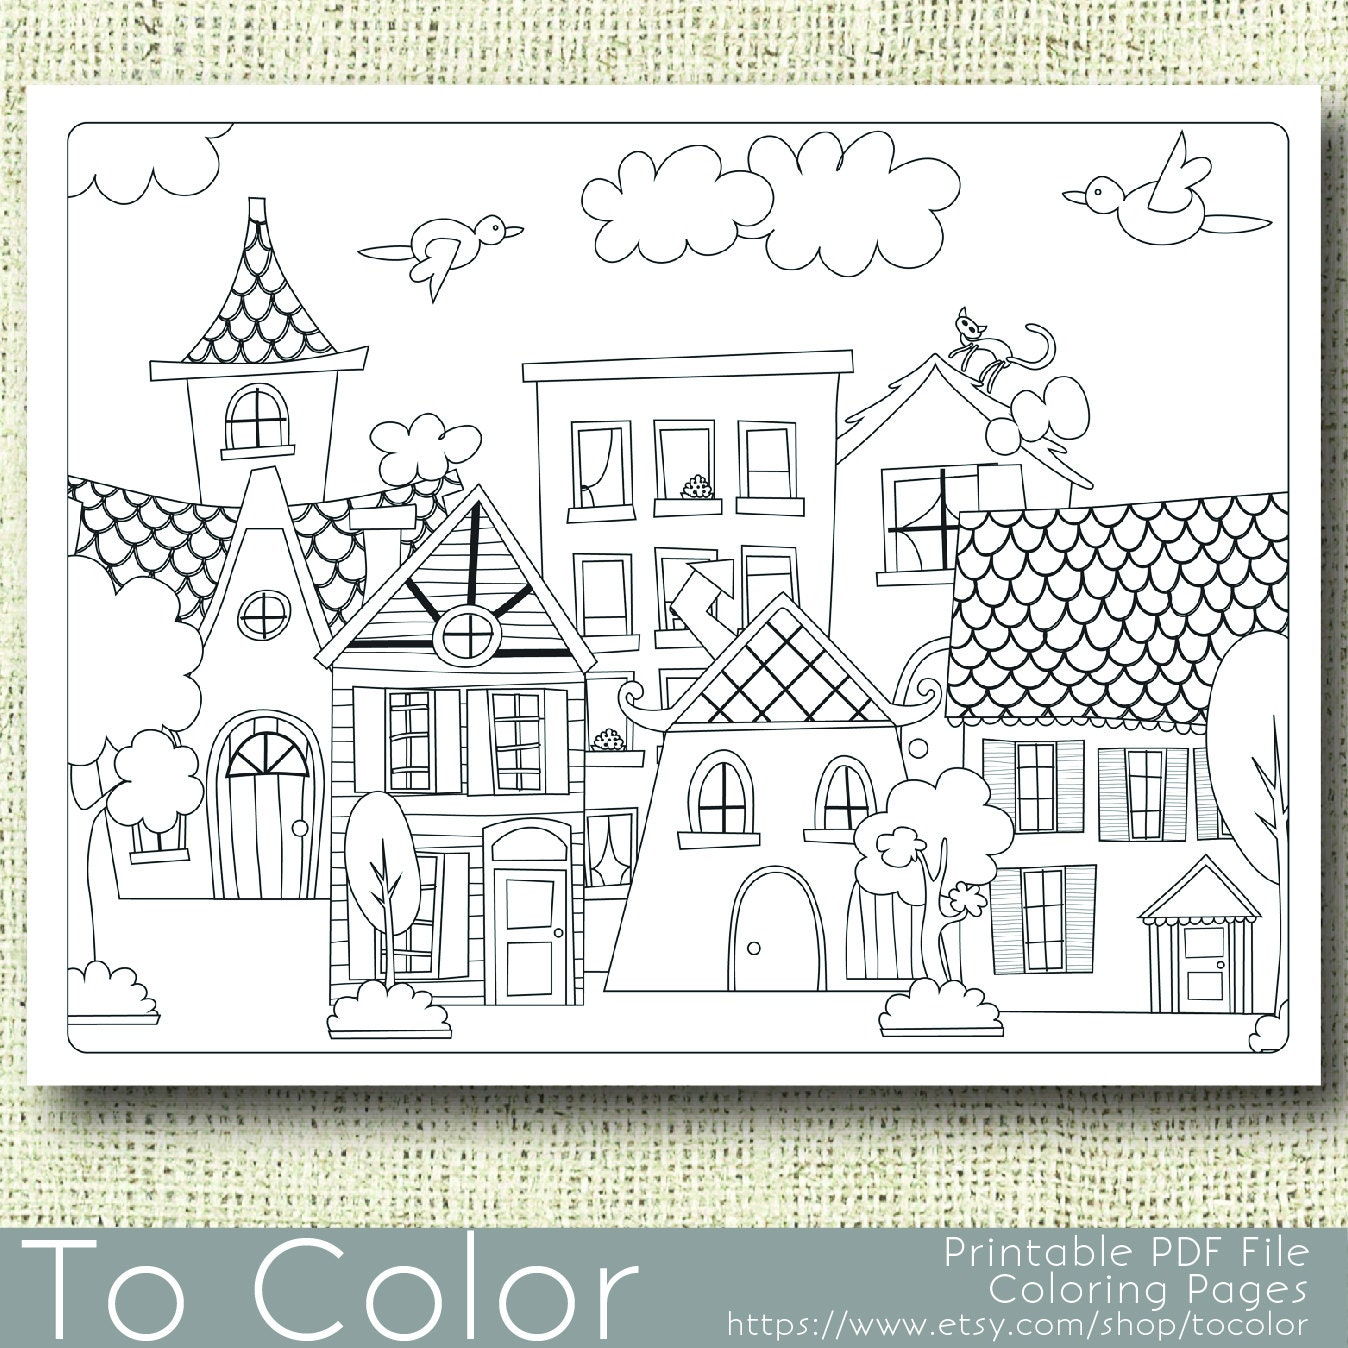 Printable Coloring Pages For Adults Houses : Printable Houses Coloring Page for Adults PDF / JPG Instant